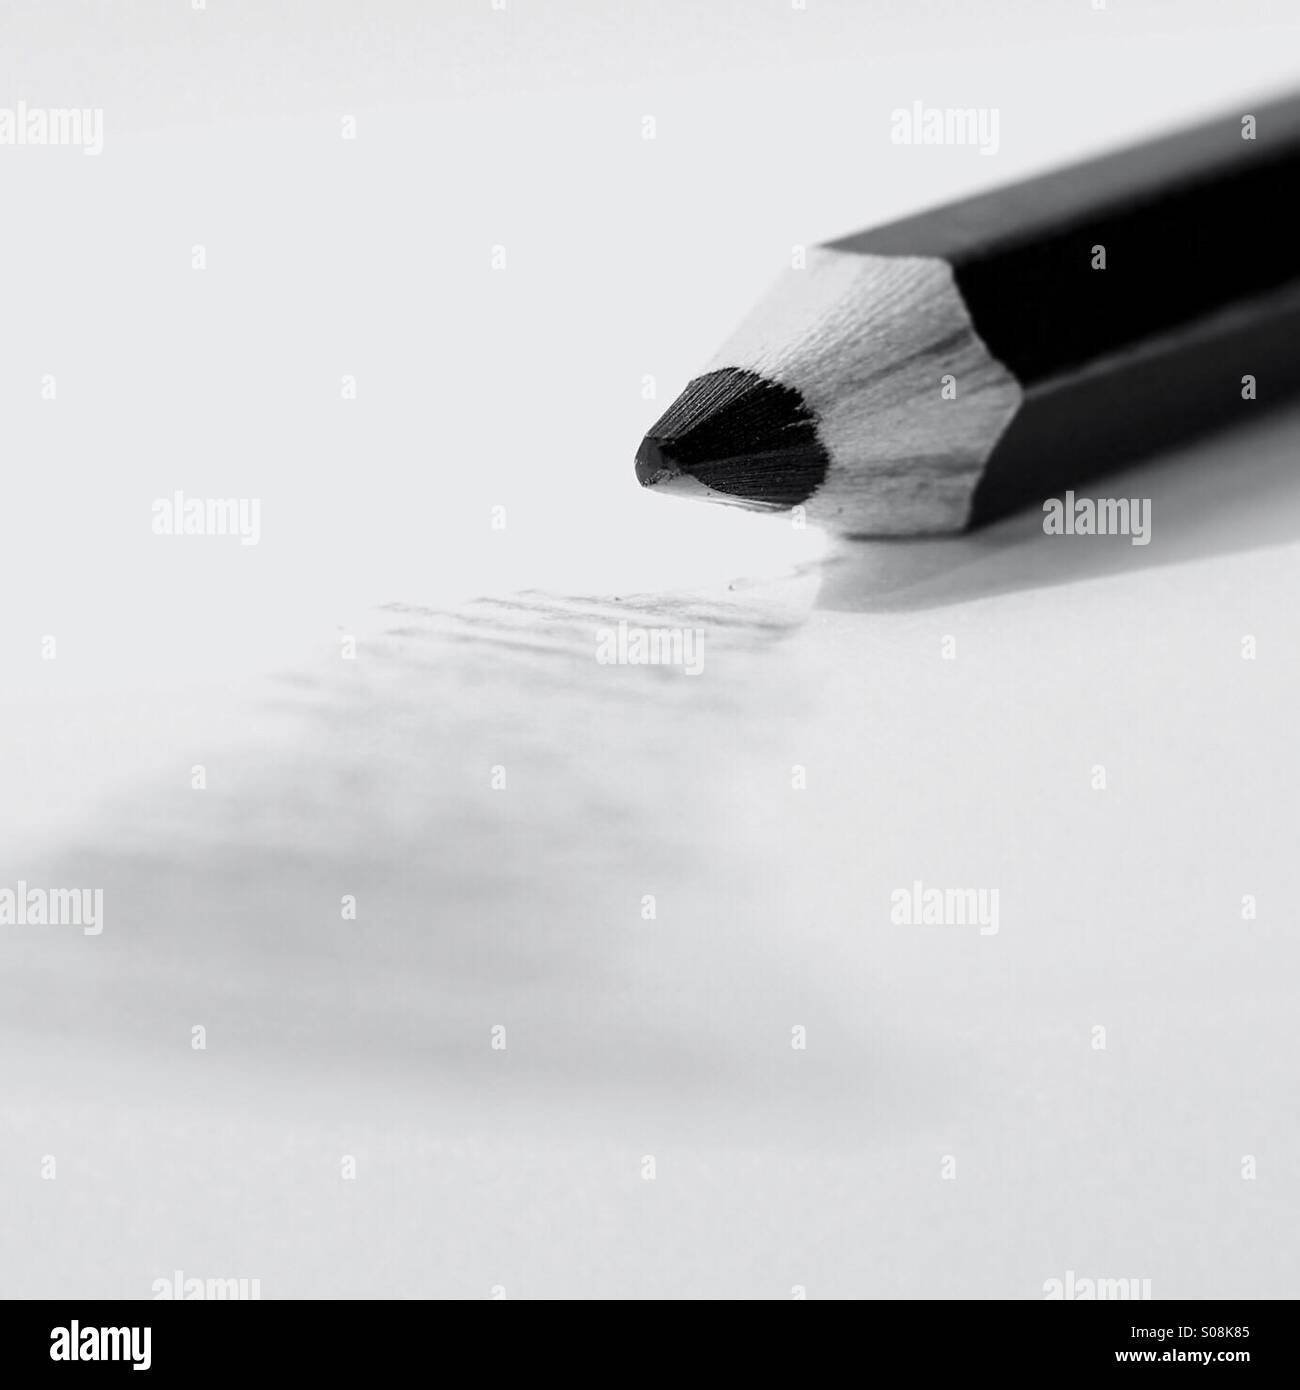 Drawing pencil lies on paper next to scribble - Stock Image